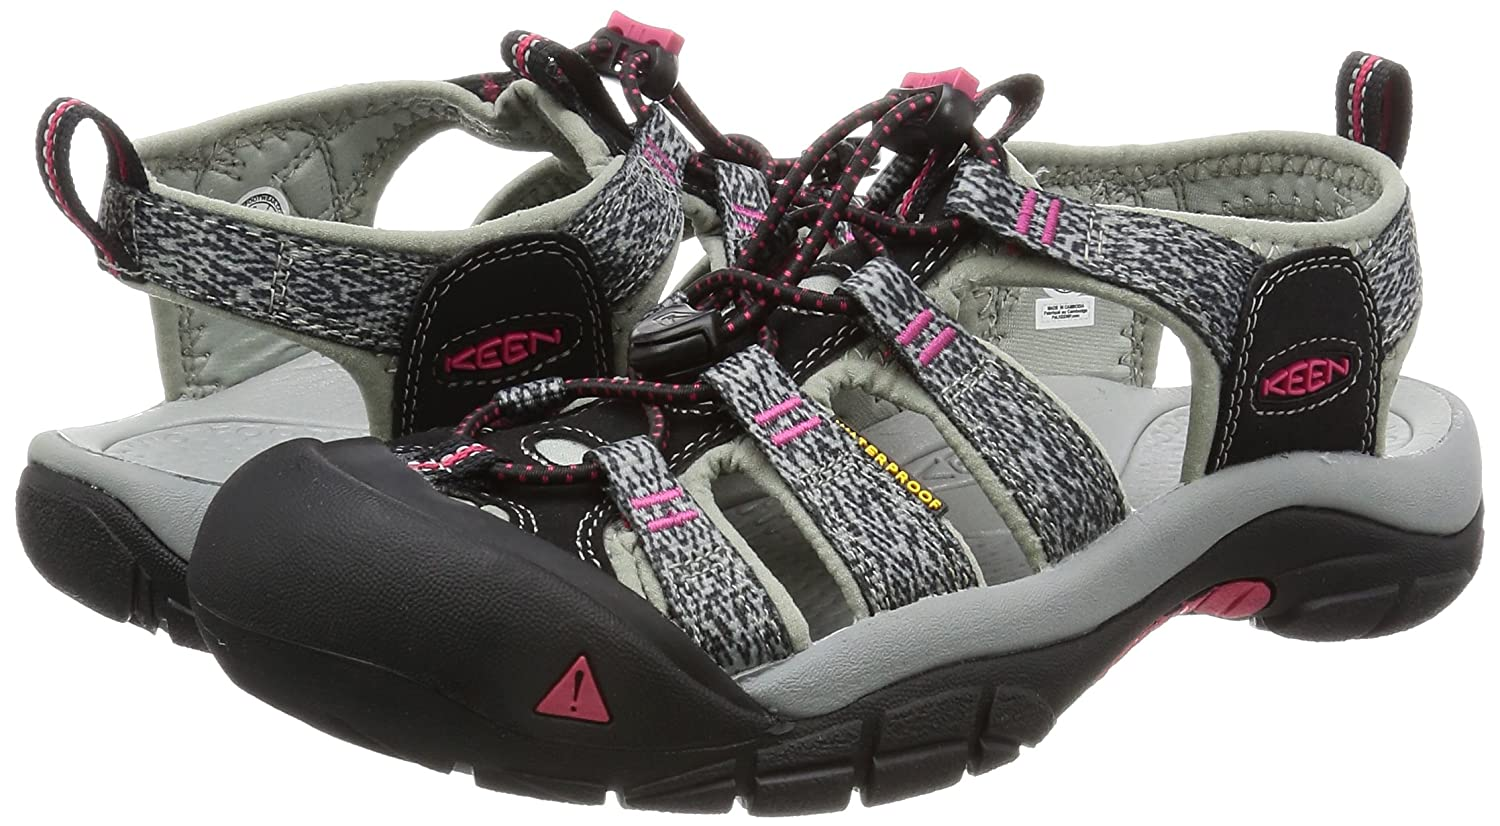 KEEN Women's Newport H2 Sandal B01H763W04 10 B(M) US|Black/Bright Rose